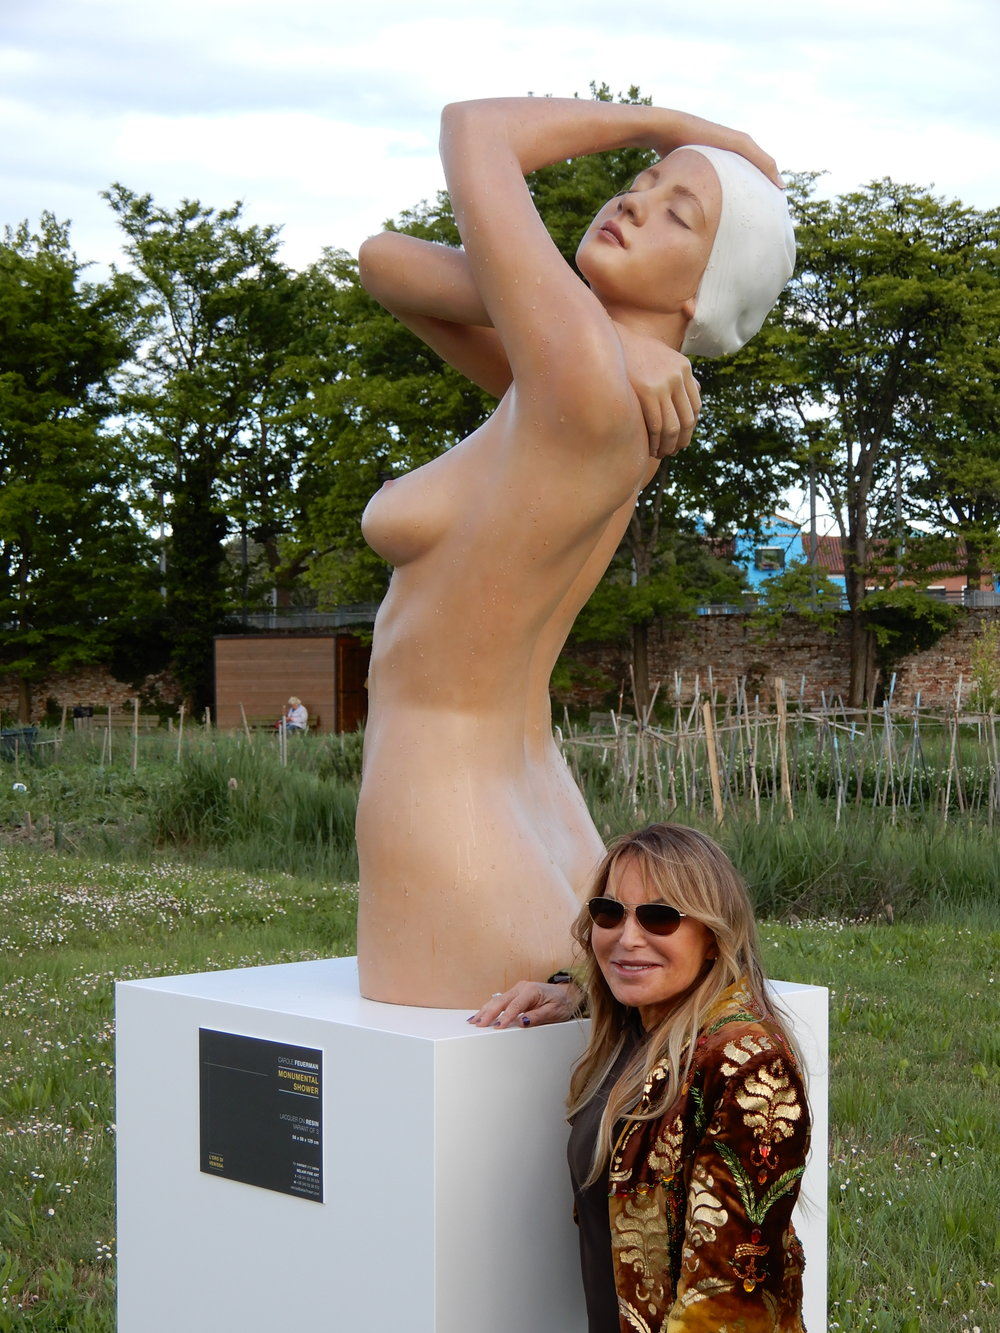 """Carole Feuerman with Monumental Shower, Bruano, Italy, 2009, Resin, 51"""" x 21"""" x 23"""""""